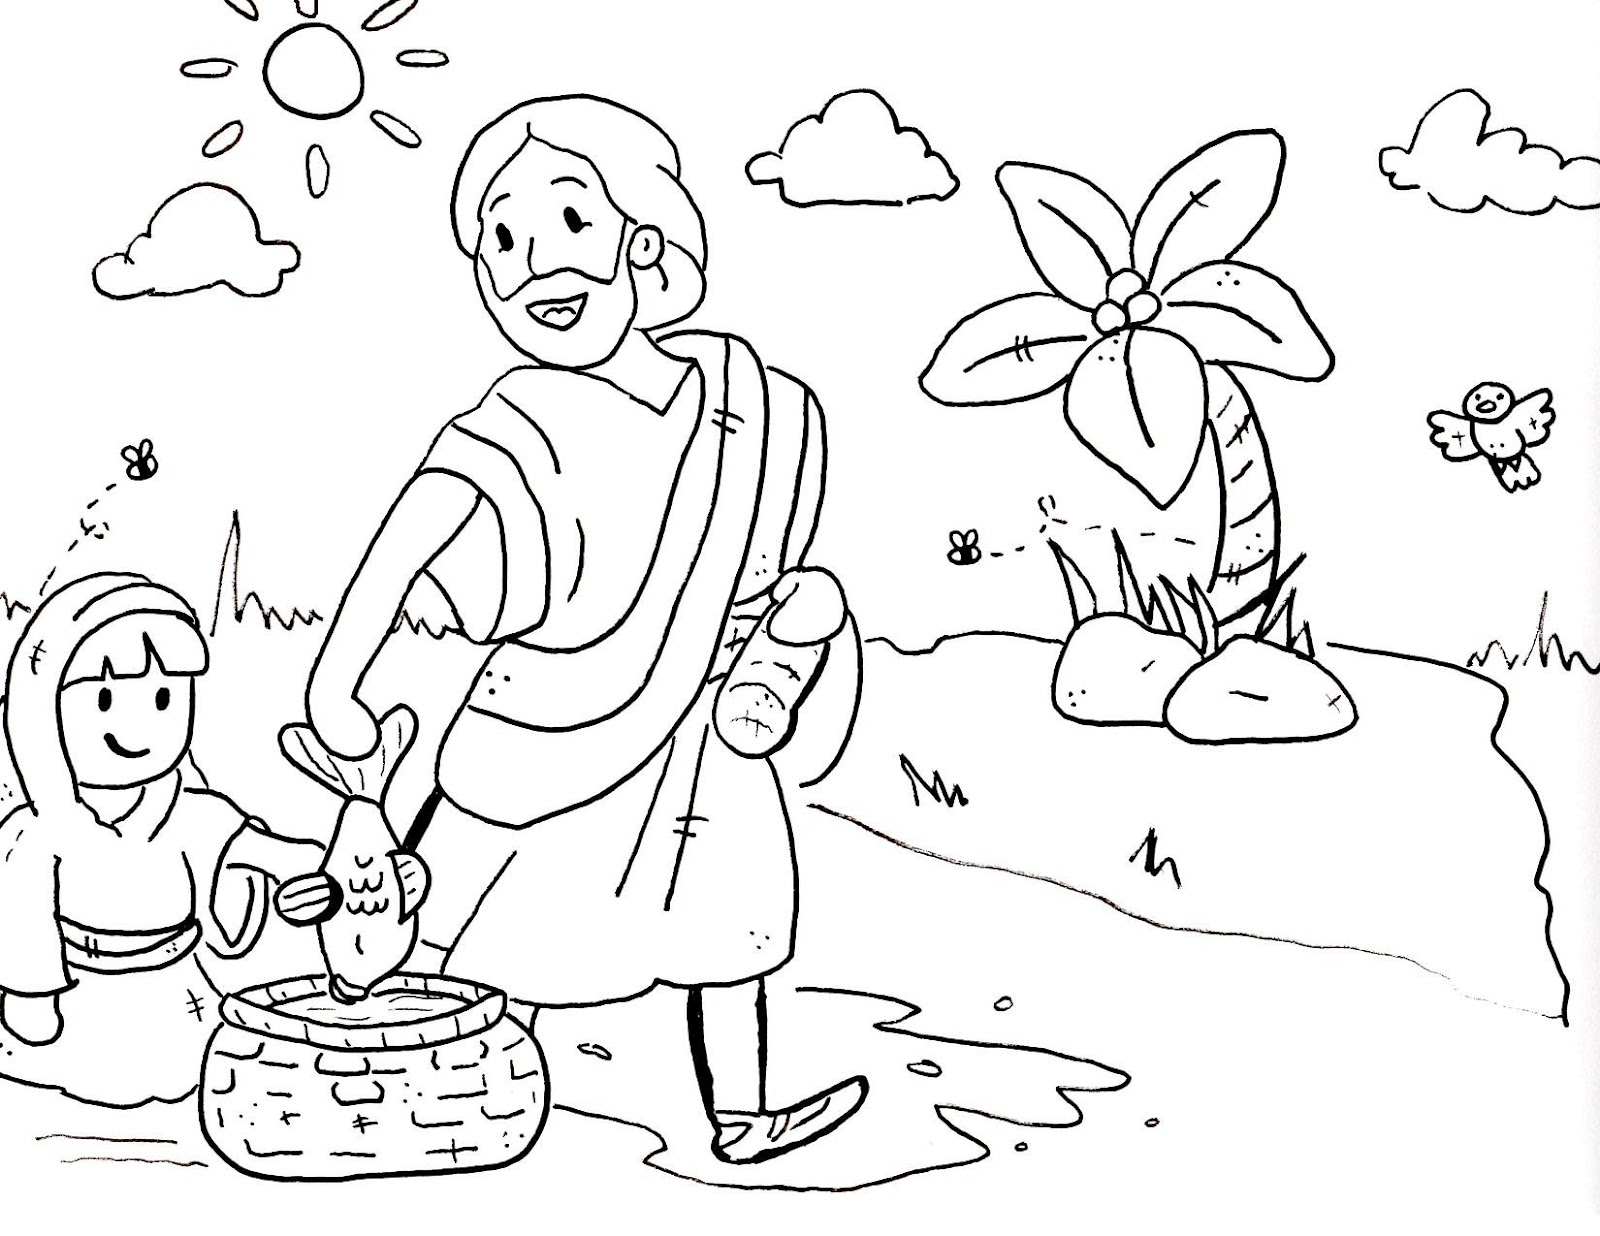 1600x1236 epic sunday school coloring pages 14 in coloring for kids with - School Coloring Pages Printable